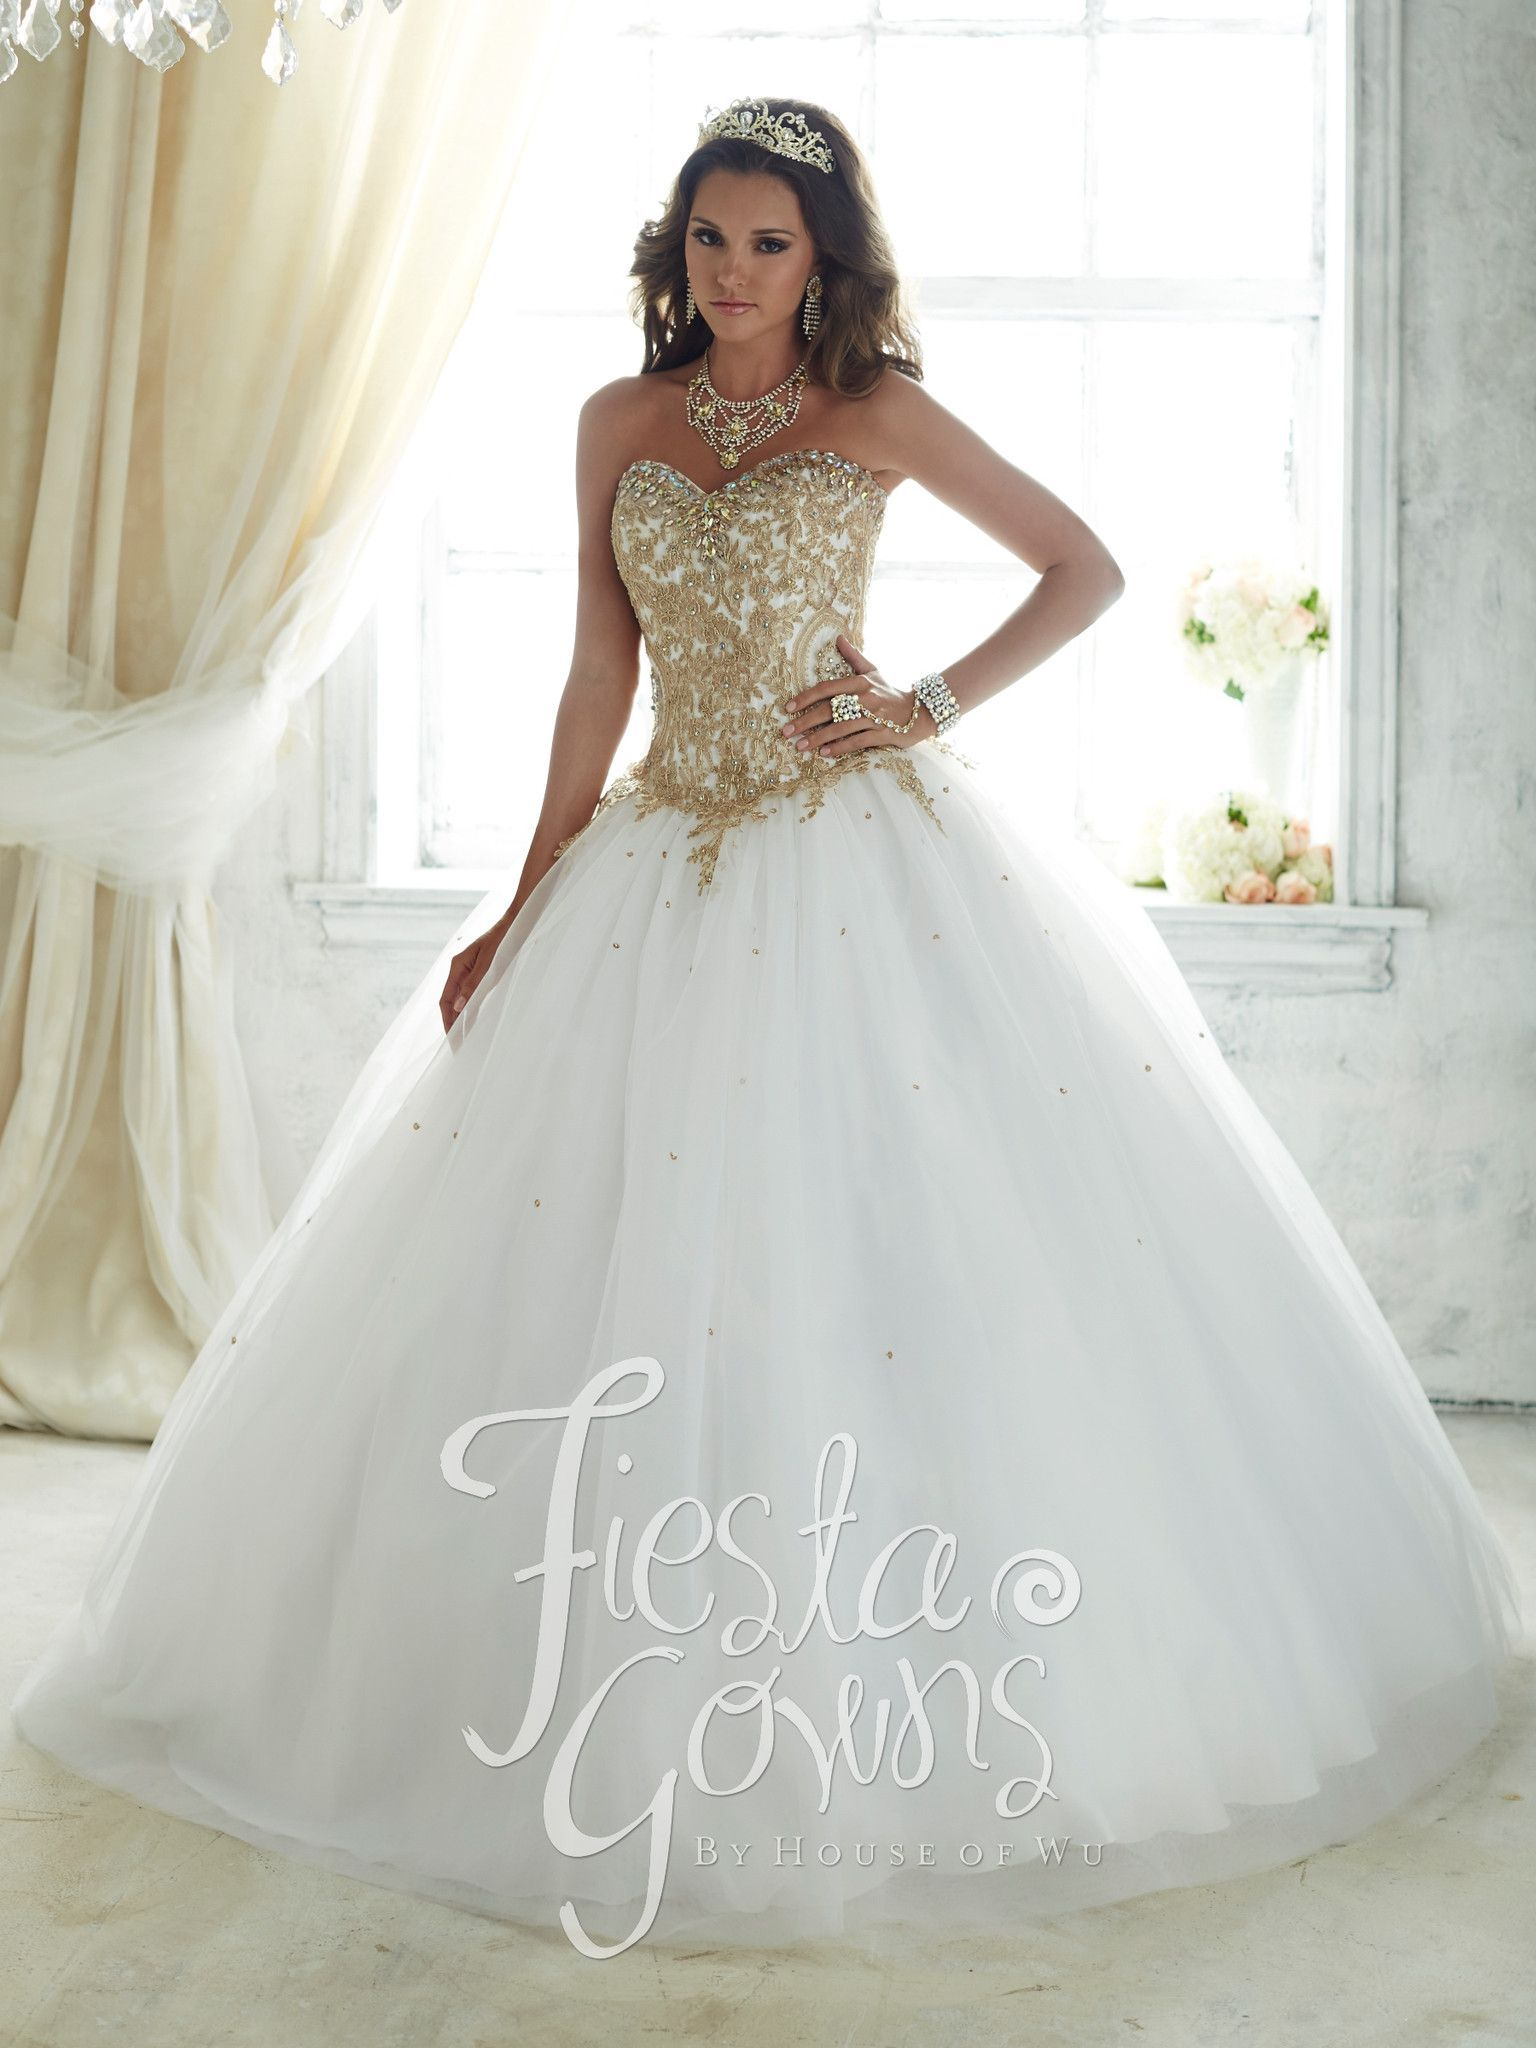 Gold beaded strapless dress by house of wu fiesta gowns style